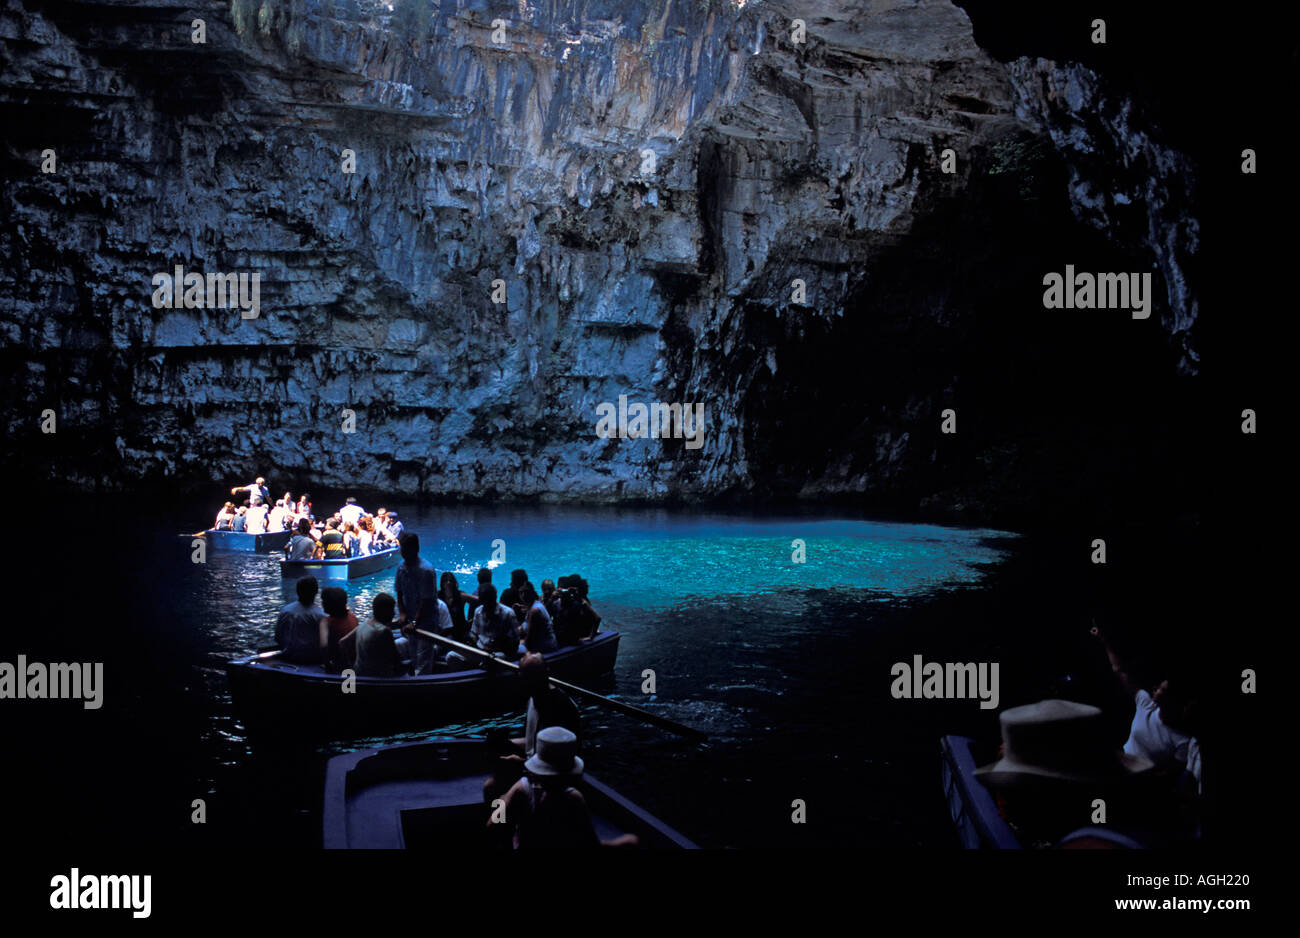 Tourists on a boat tour of Melissani Lake and cave Crystal blue waters of underground lake Kefalonia Ionian Islands Greece - Stock Image